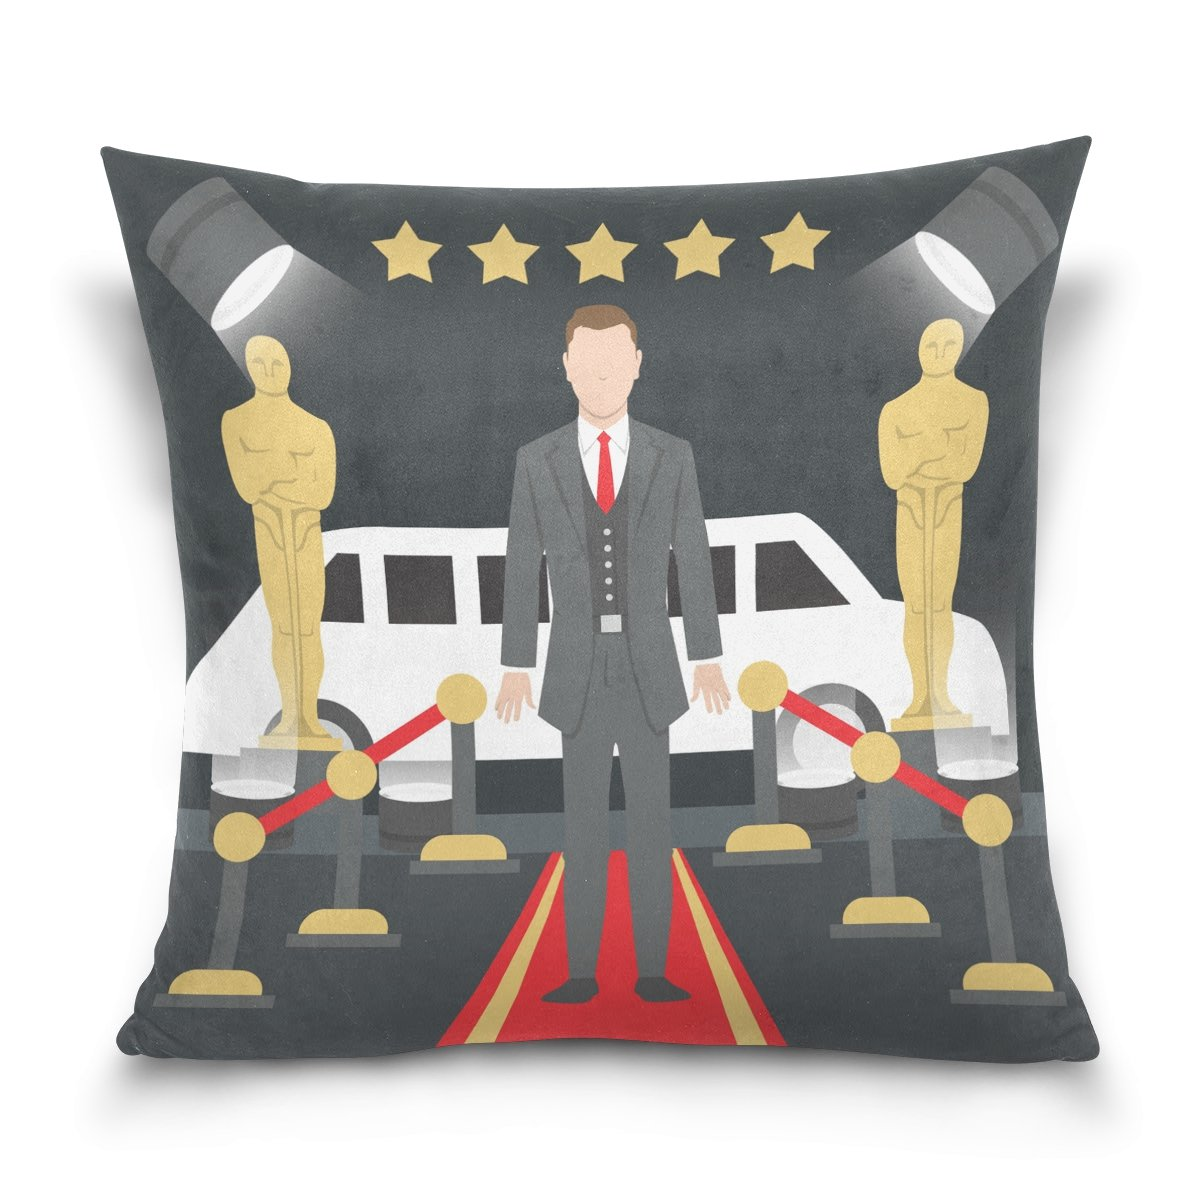 Hokkien Blue Viper Movie Awards Scenes Decorative Square Throw Pillow Case Cushion Cover for Sofa Bedroom Car Double-Sided Design 20 x 20 inch